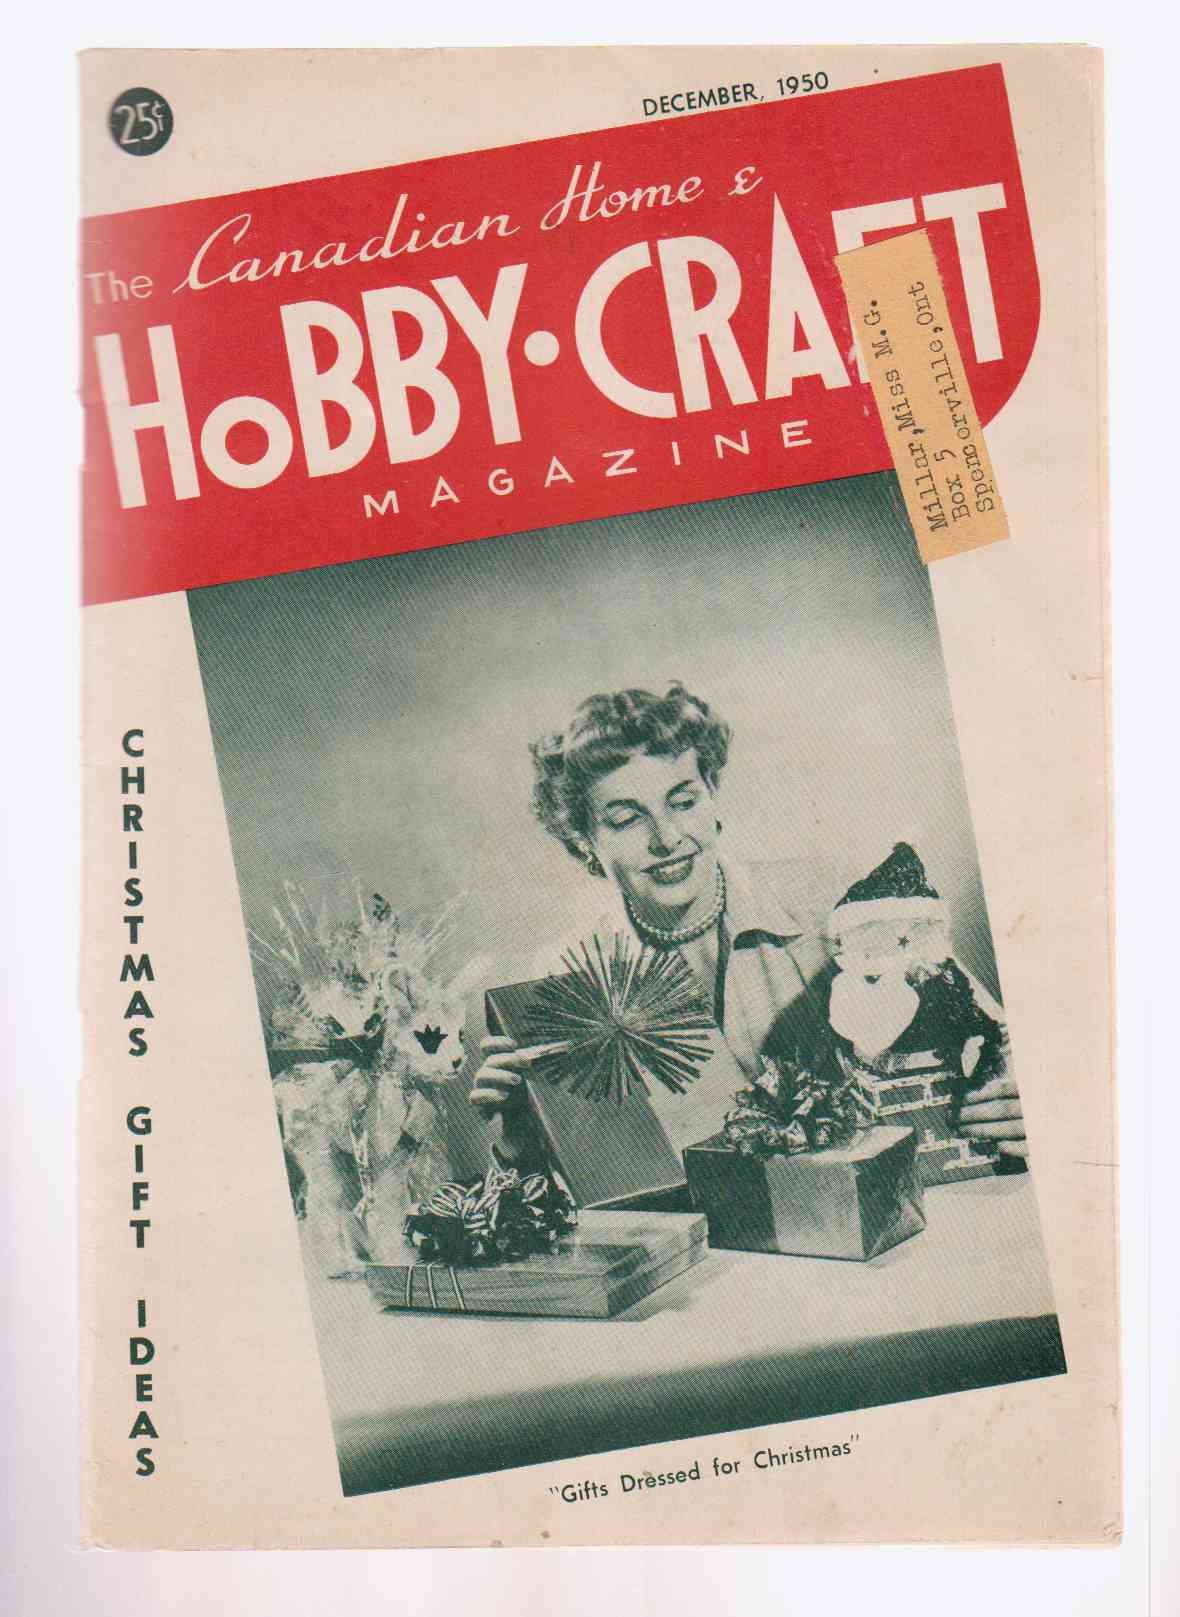 Image for The Canadian Home and Hobby-Craft Magazine December 1950 Vol. 5 No. 3